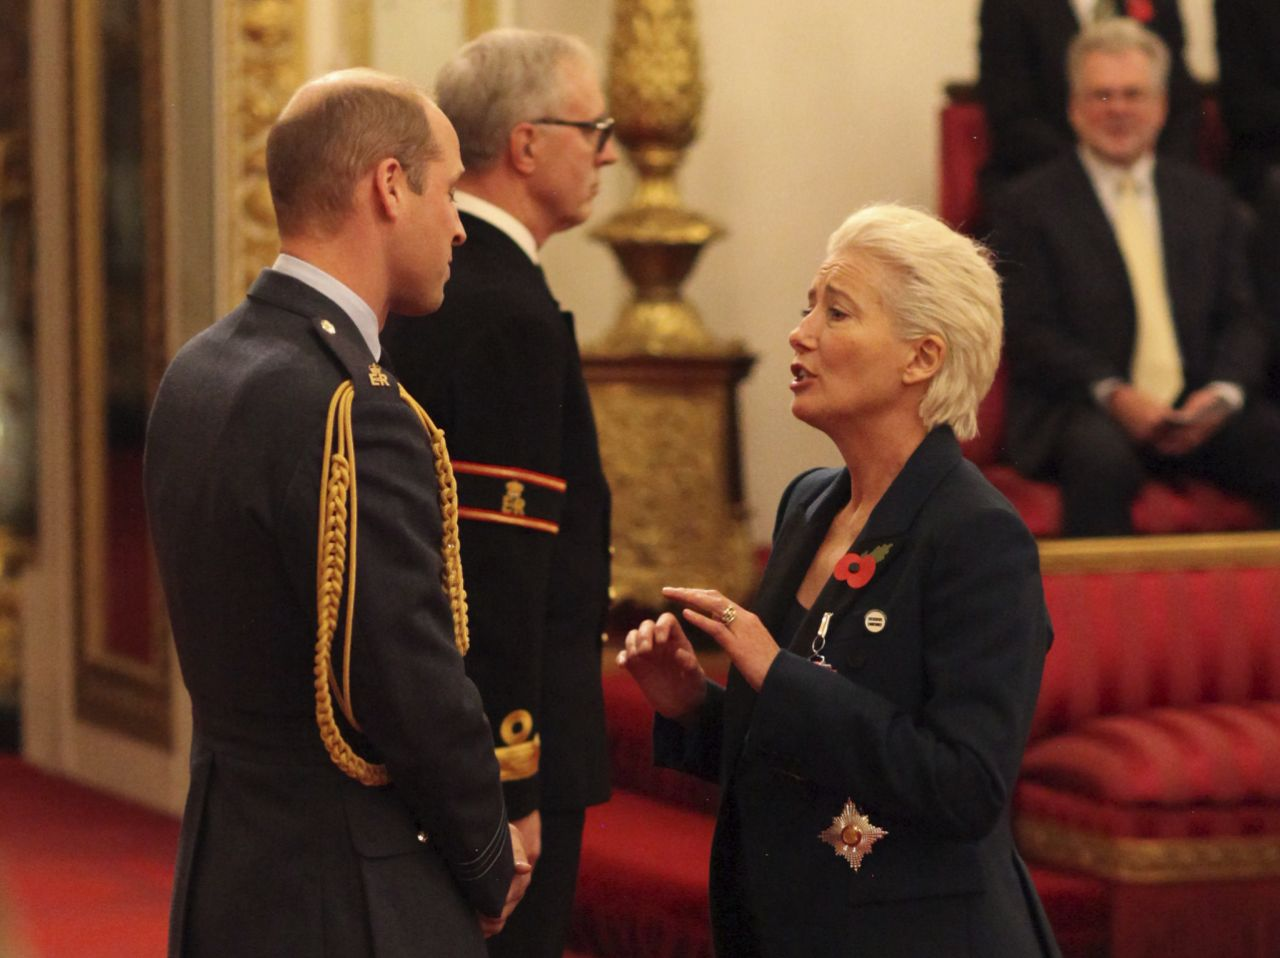 Emma Thompson teases Prince William as she accepts her damehood Photo AAP